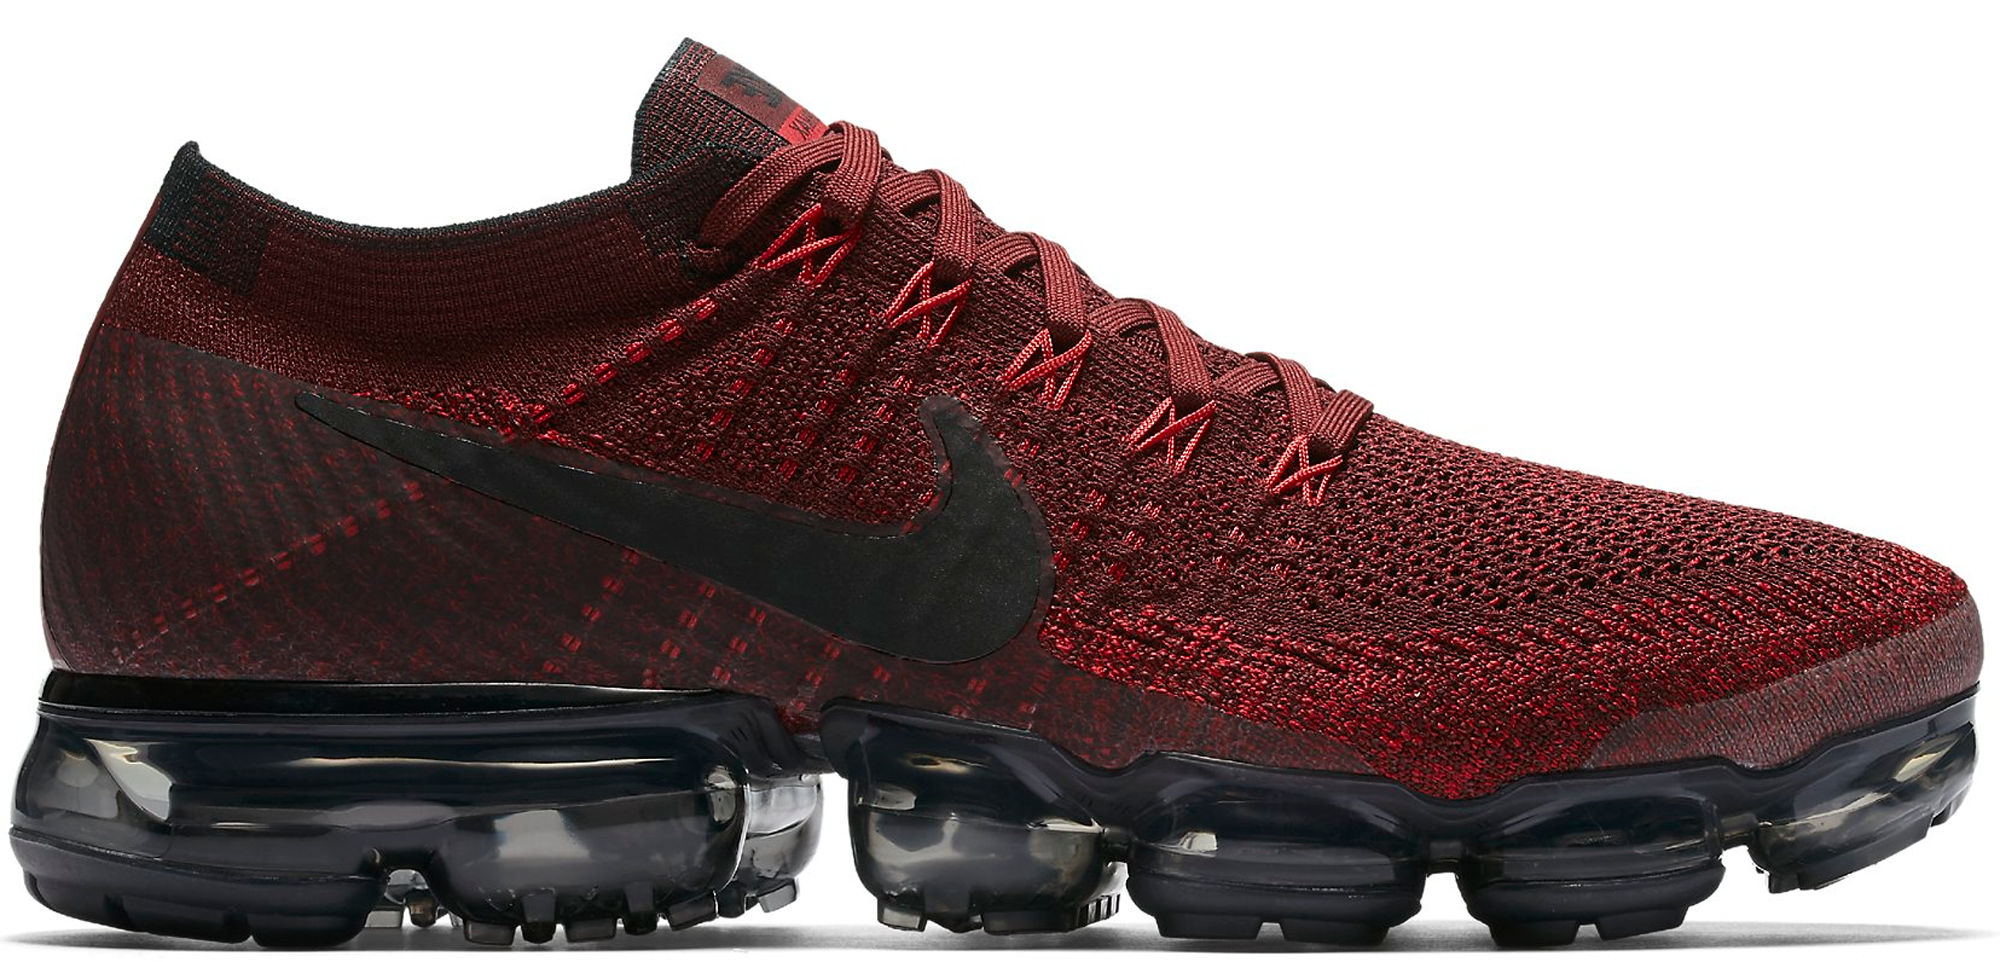 Sole Connection: Jan/Feb Review feat Cheap Nike Vapormax CDG, VLone